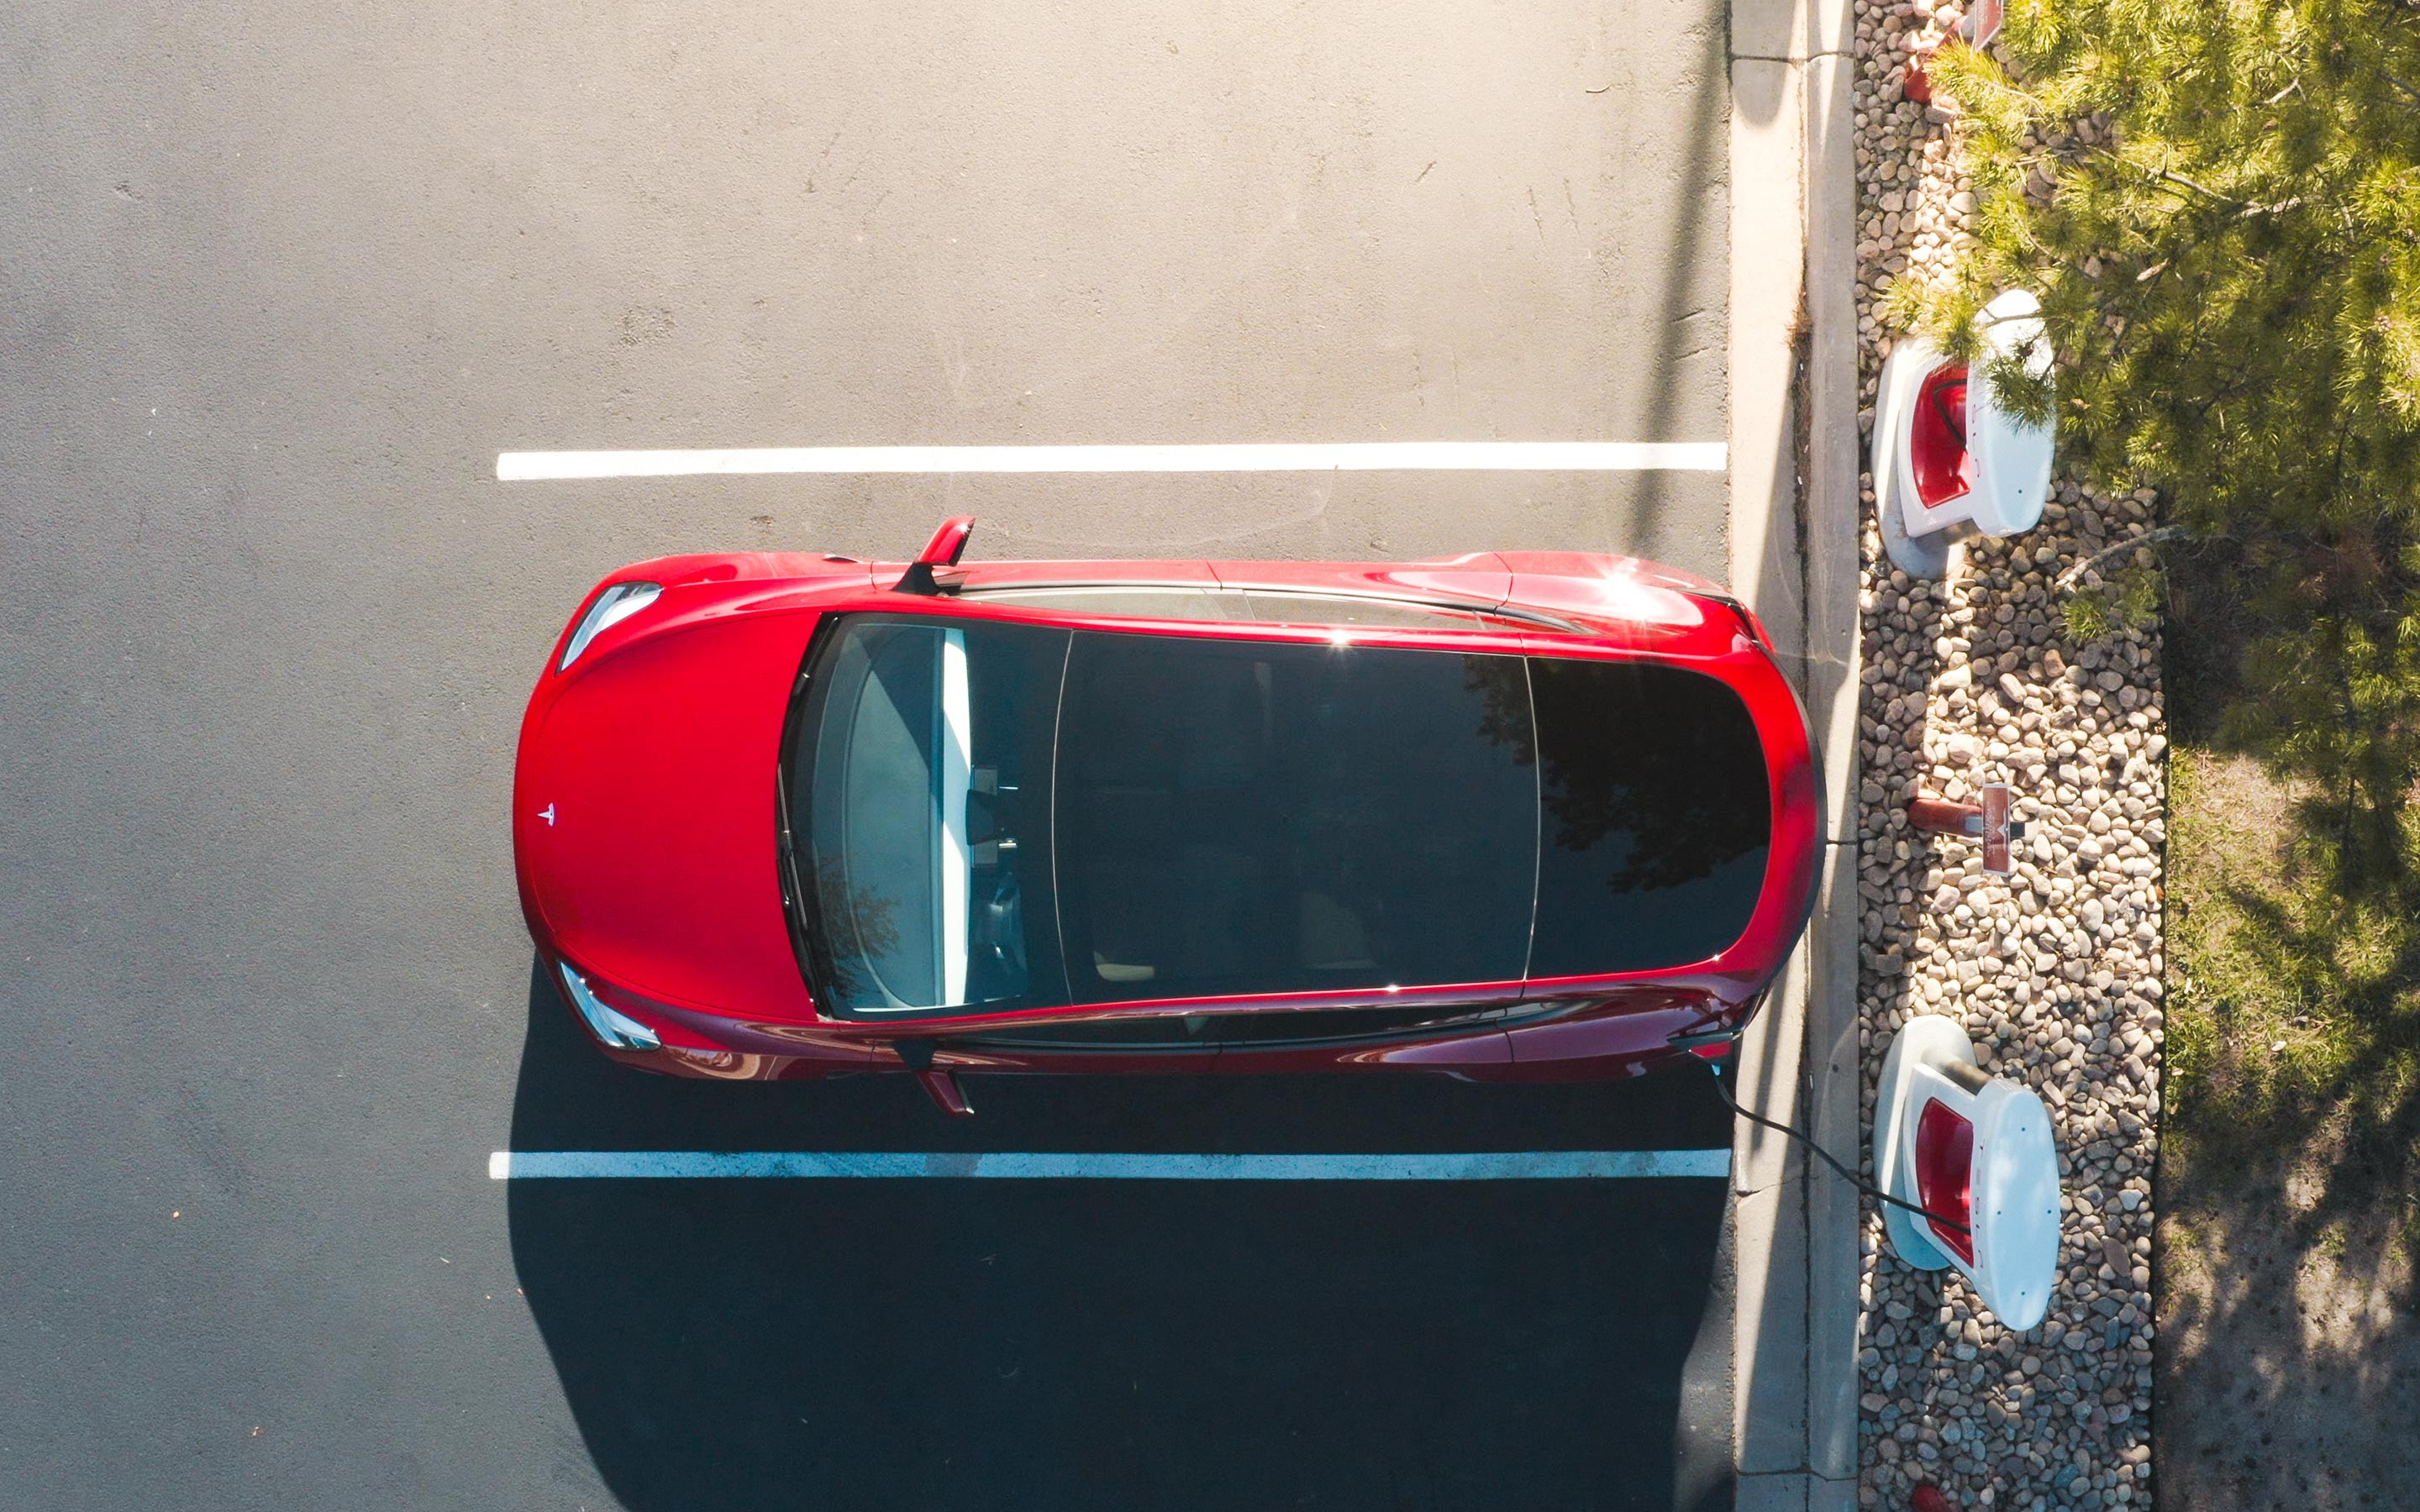 Birds-eye view of red Tesla charging via Supercharger